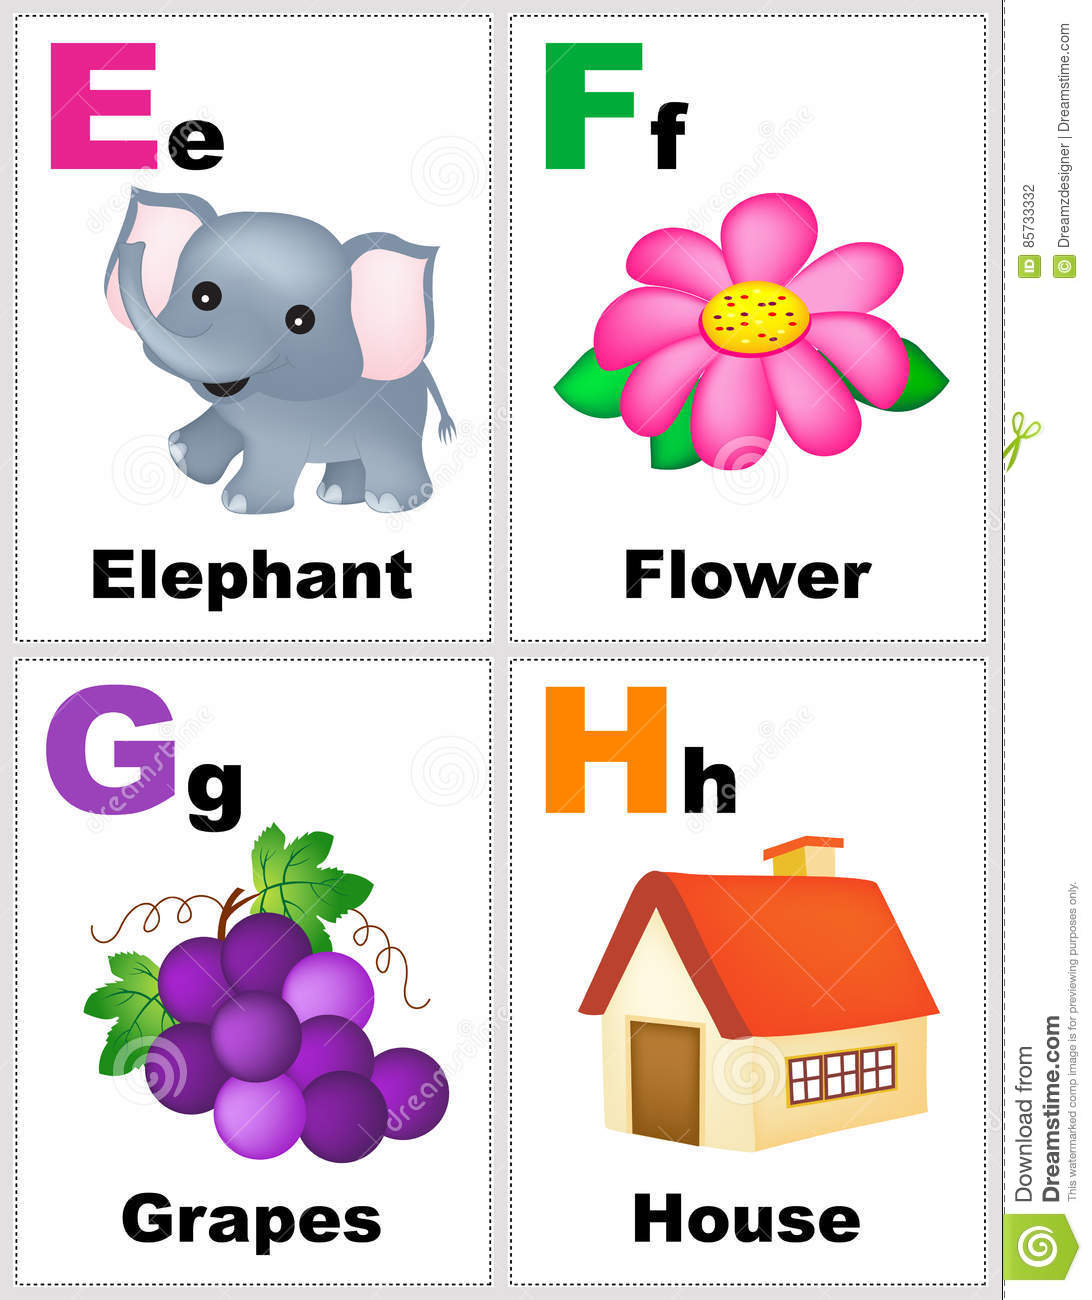 image about Printable Alphabet Flash Cards identified as Alphabet flashcards inventory example. Case in point of